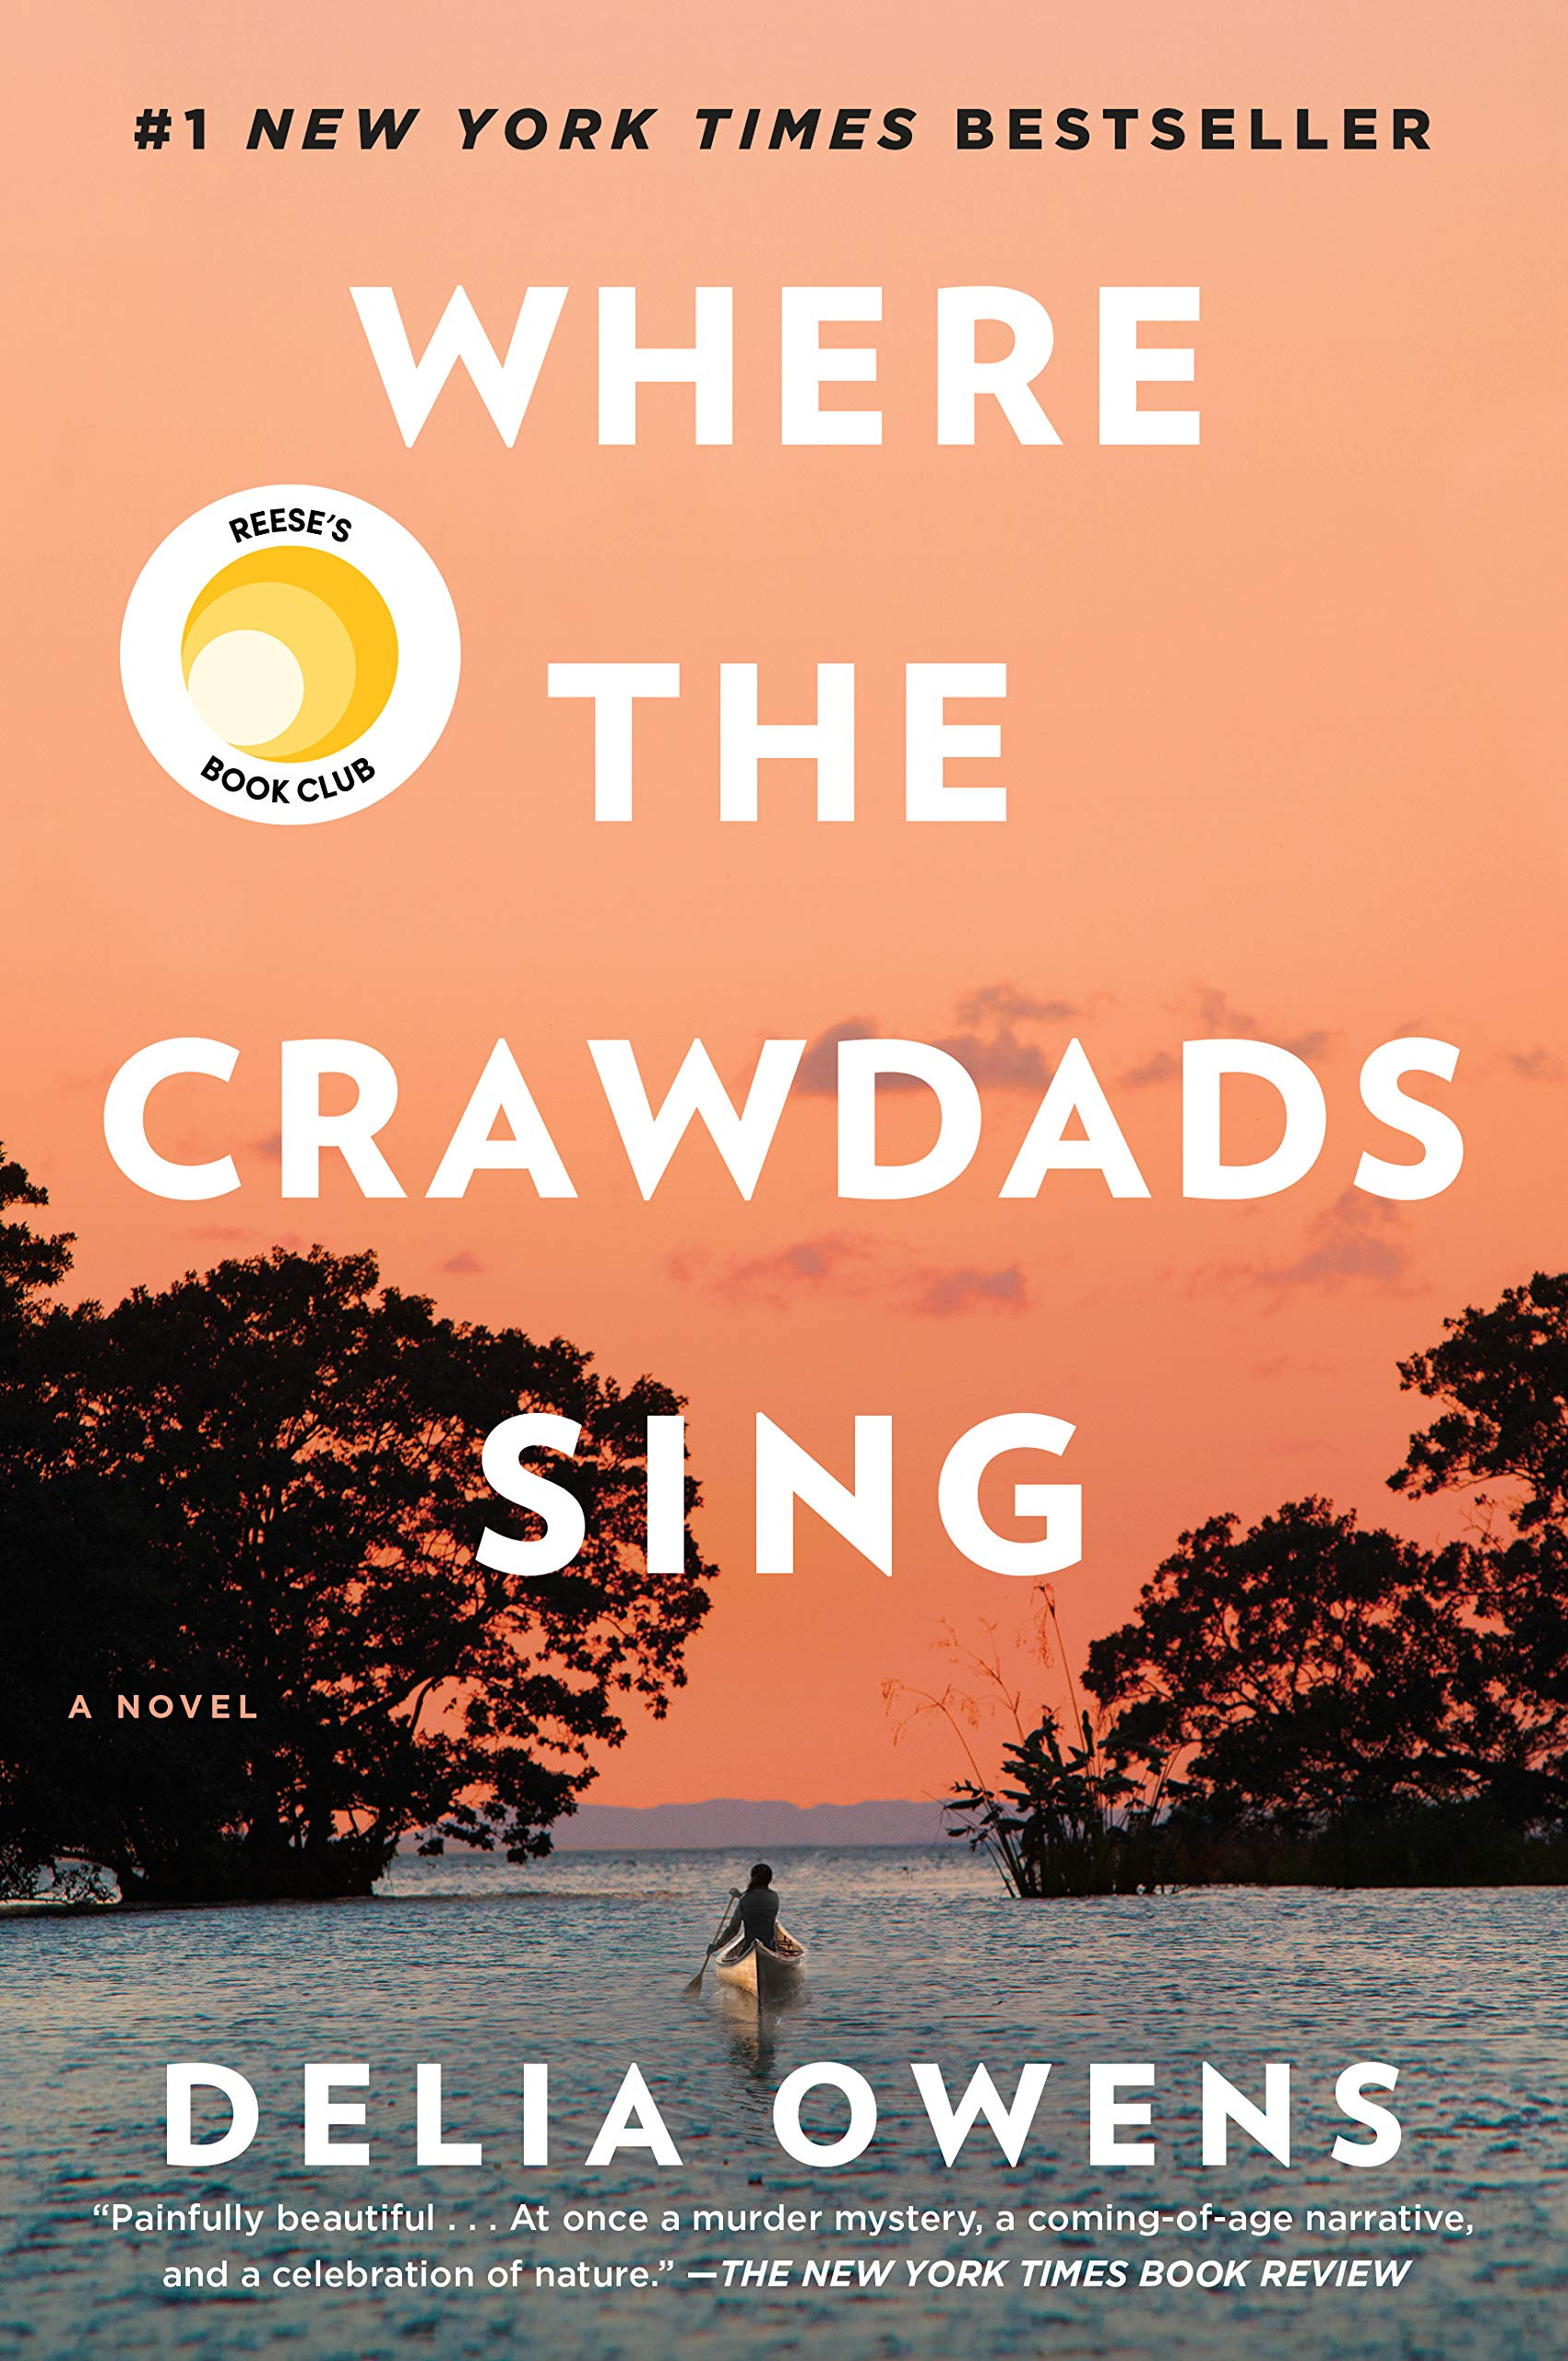 Where the Crawdads Sing by Delia Owens - This book y'all....this book will do it to you. It instantly became one of of my favorite books of all time and one I know I will reread again and again. It's about a young girl who raises herself, alone, in the marsh of North Carolina. We follow her from girl to woman and see how loneliness and her ability to survive shapes her - all while trying to figure out what happened to the popular boy in town who was found dead. It is incredible and I couldn't put it down. And you know our girl Reese is pulling through and turning it into a movie, so hop on the train now and become a fan before all your friends do.